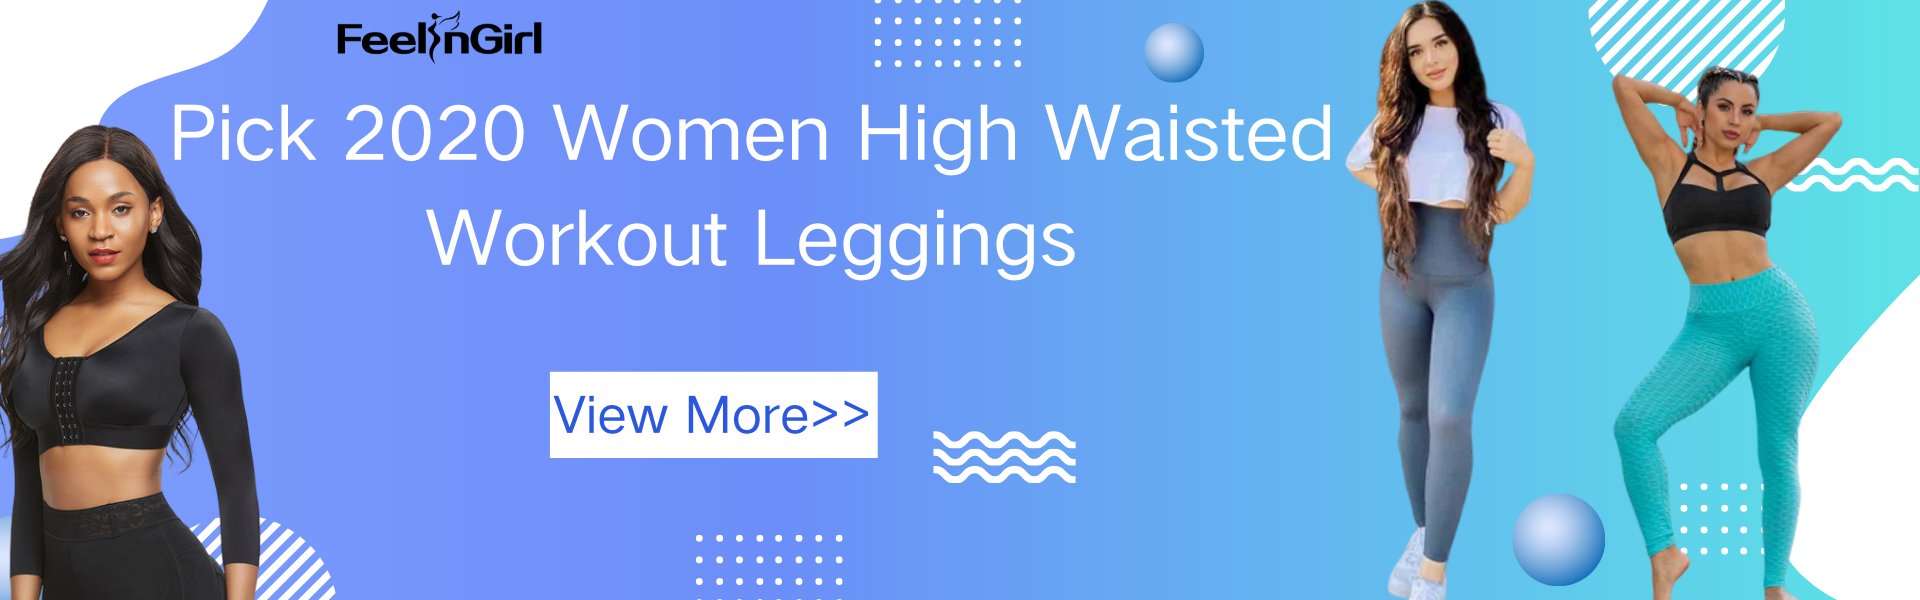 Pick 2020 Women High Waisted Workout Leggings